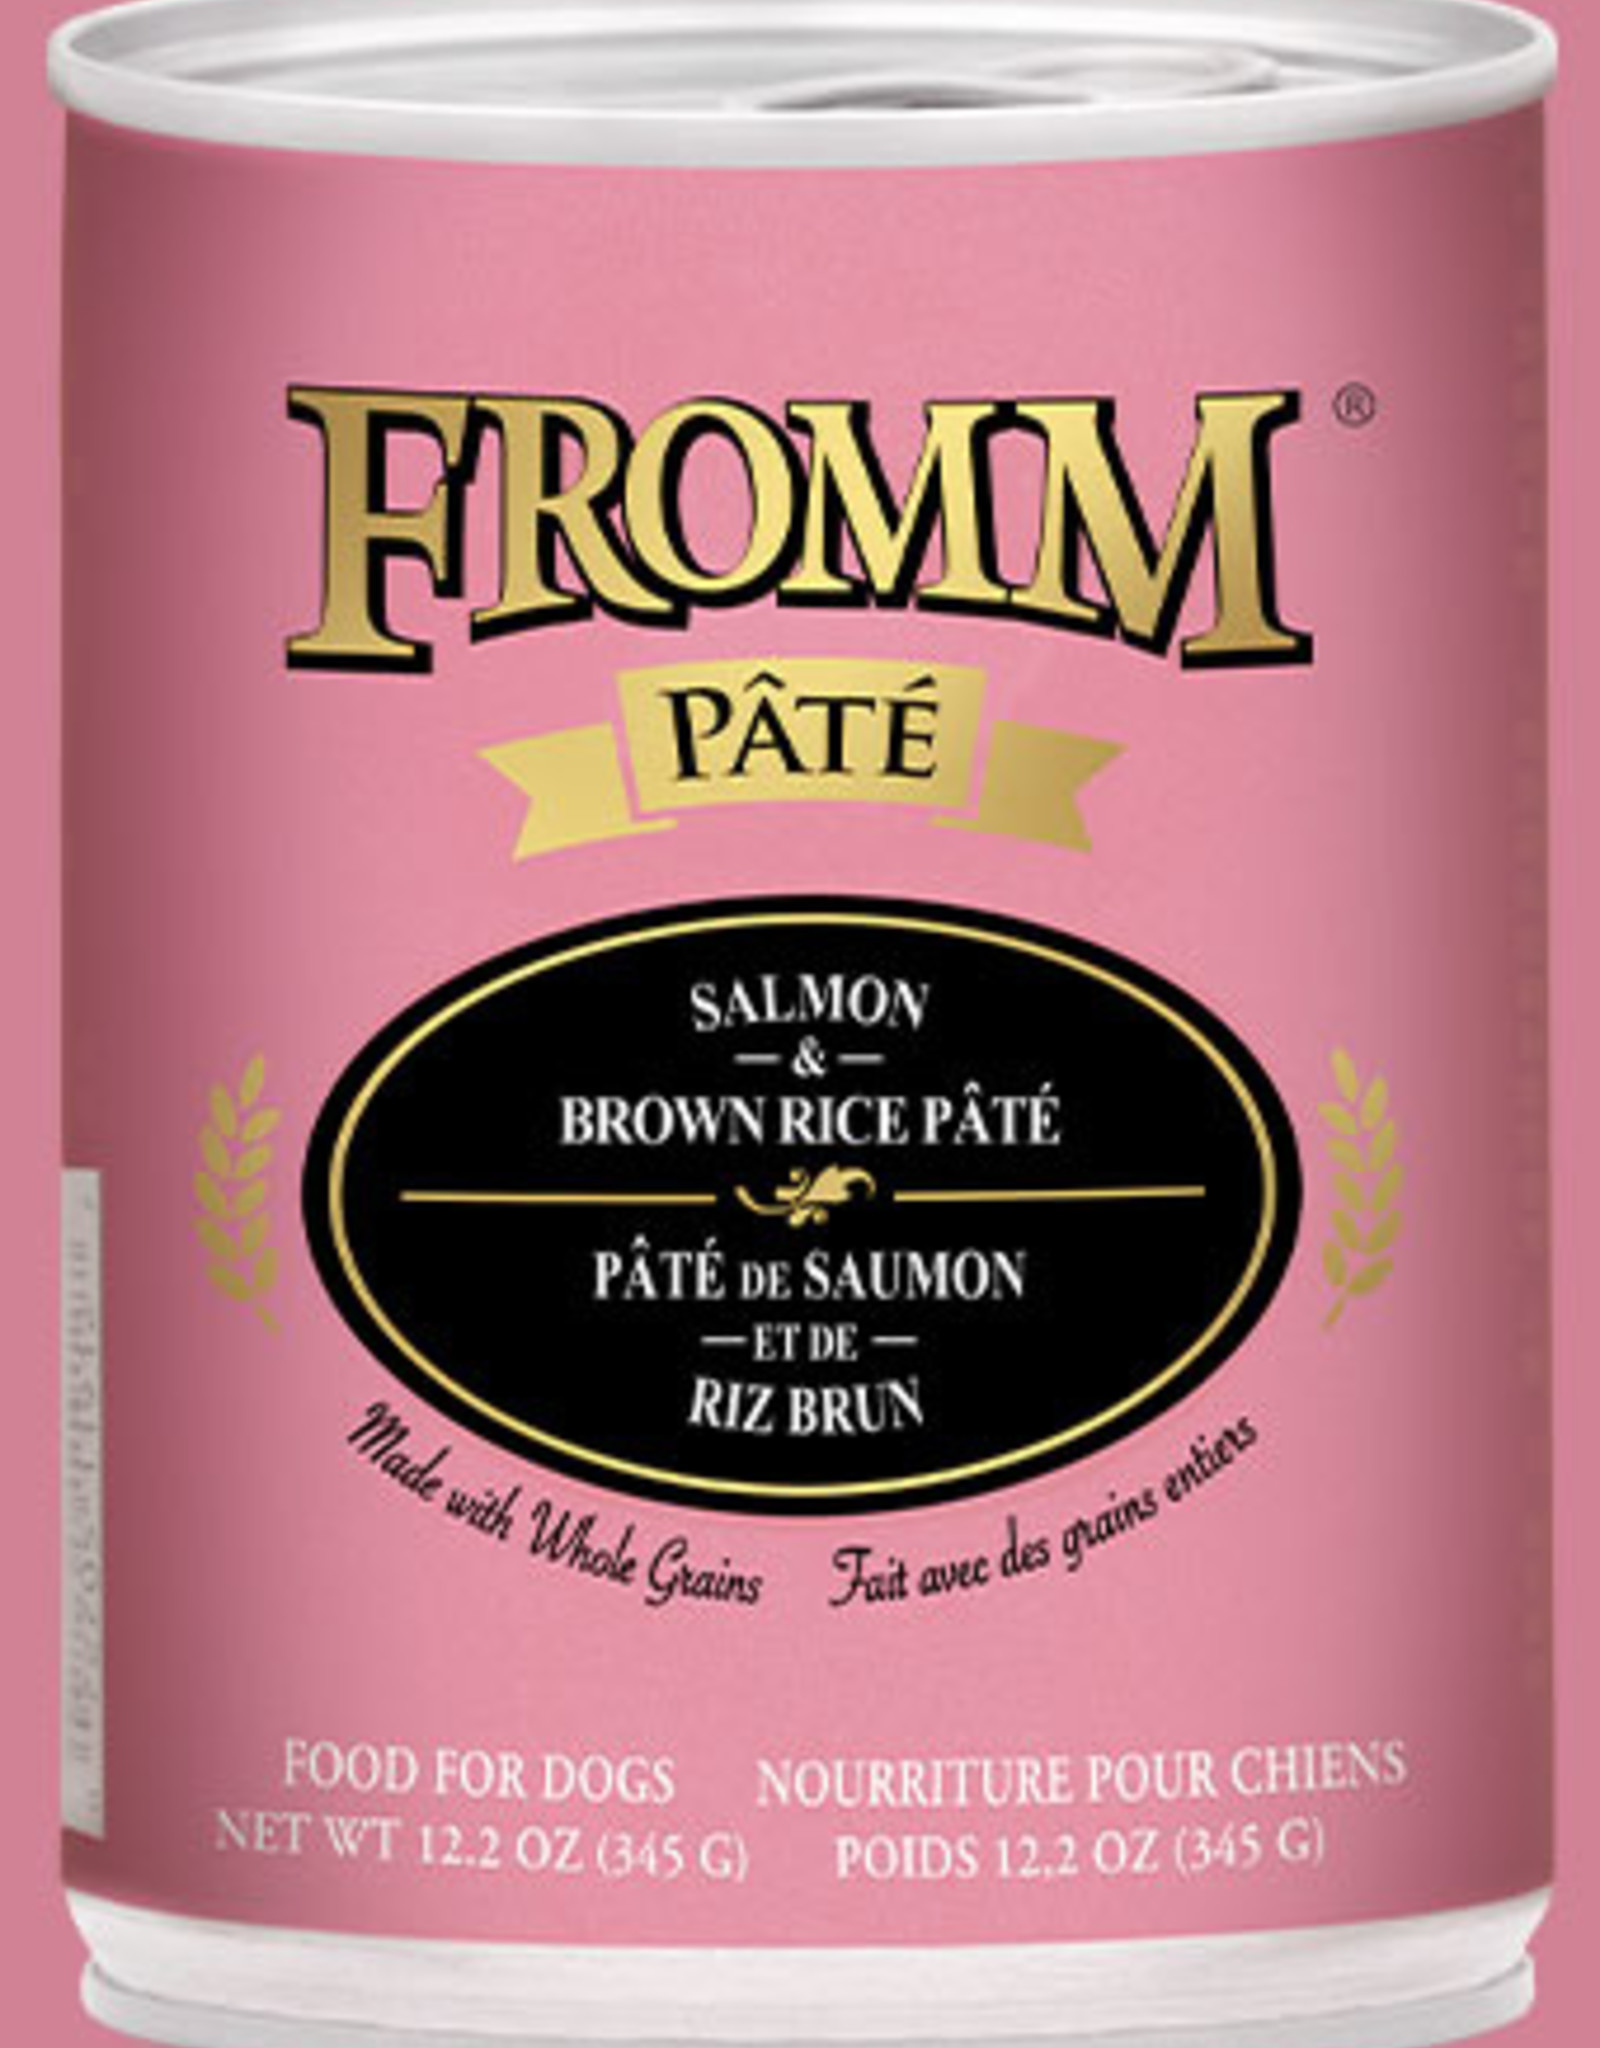 Fromm Salmon & Brown Rice Pate 12oz